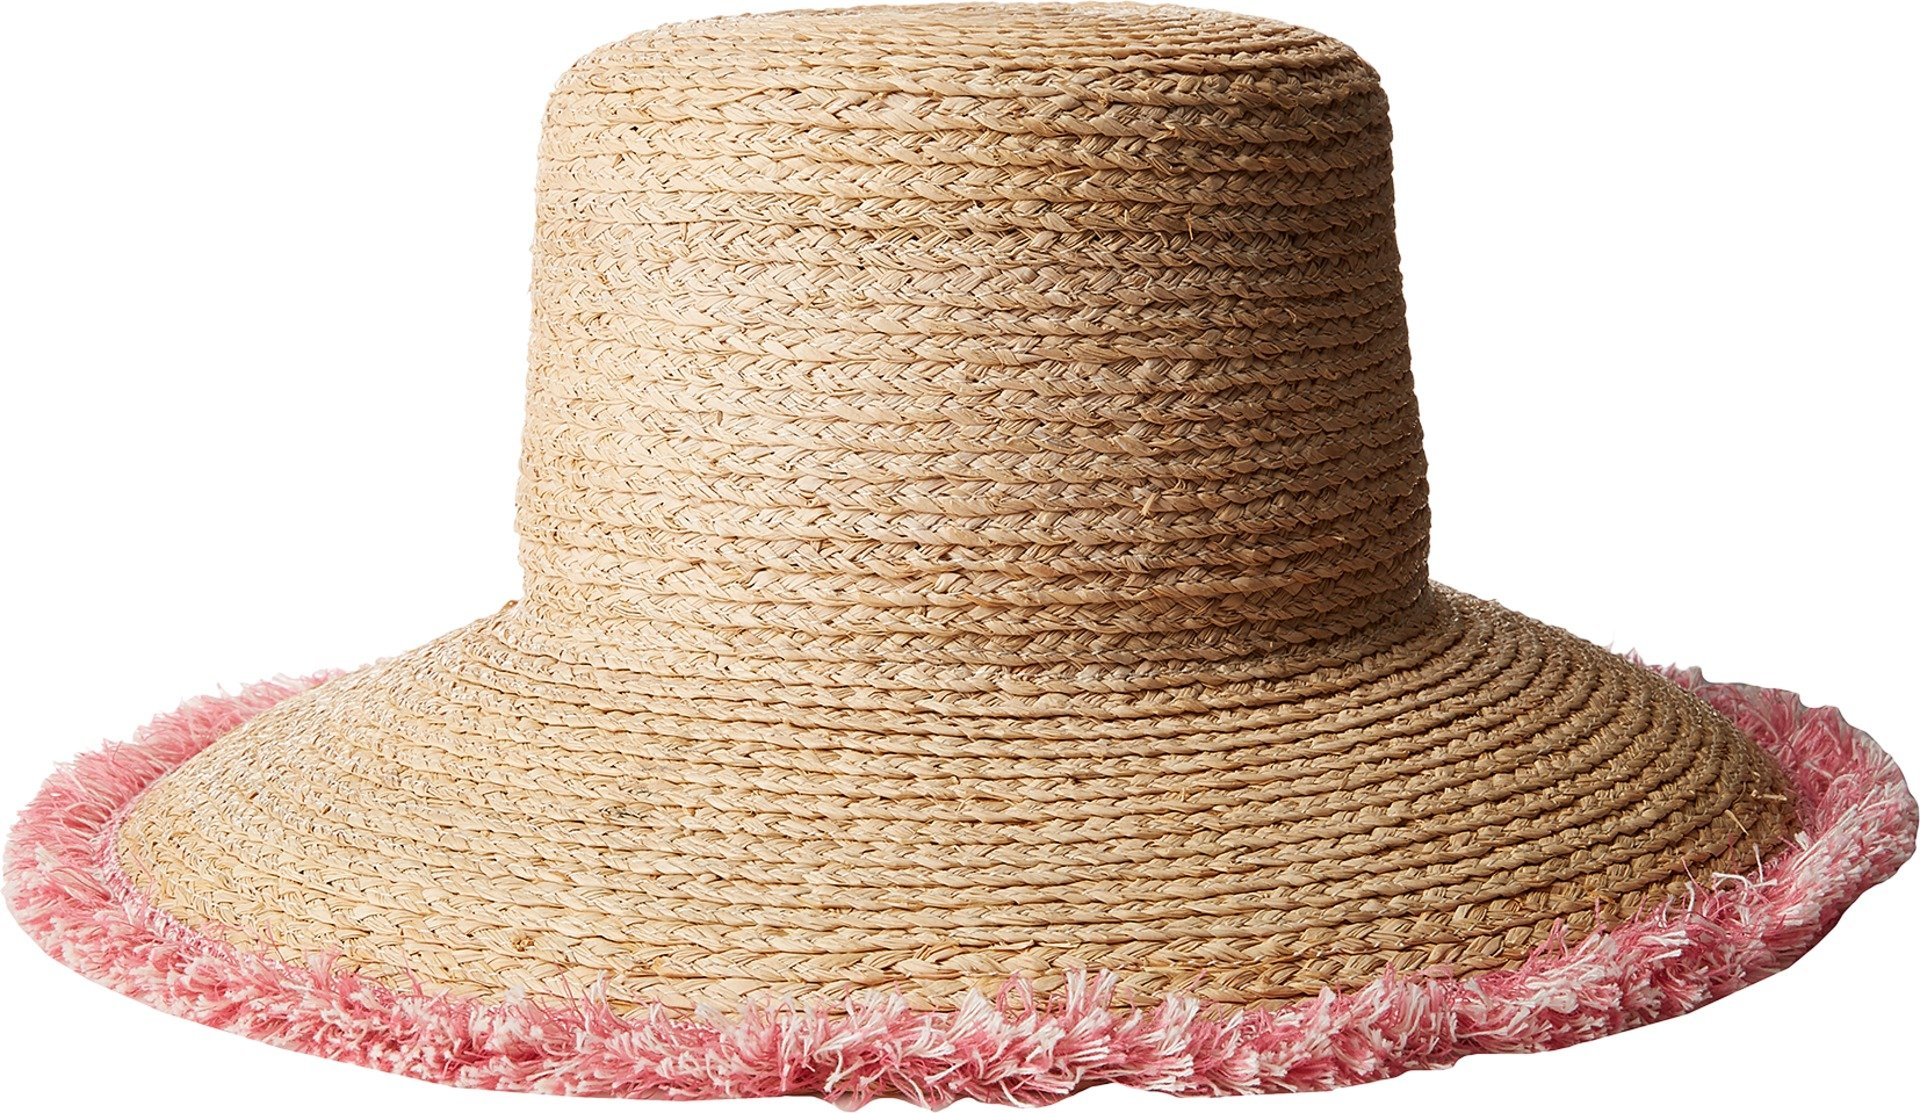 Hat Attack Women's Raffia Braid Lampshade w/Fringe Natural/Pink One Size by Hat Attack